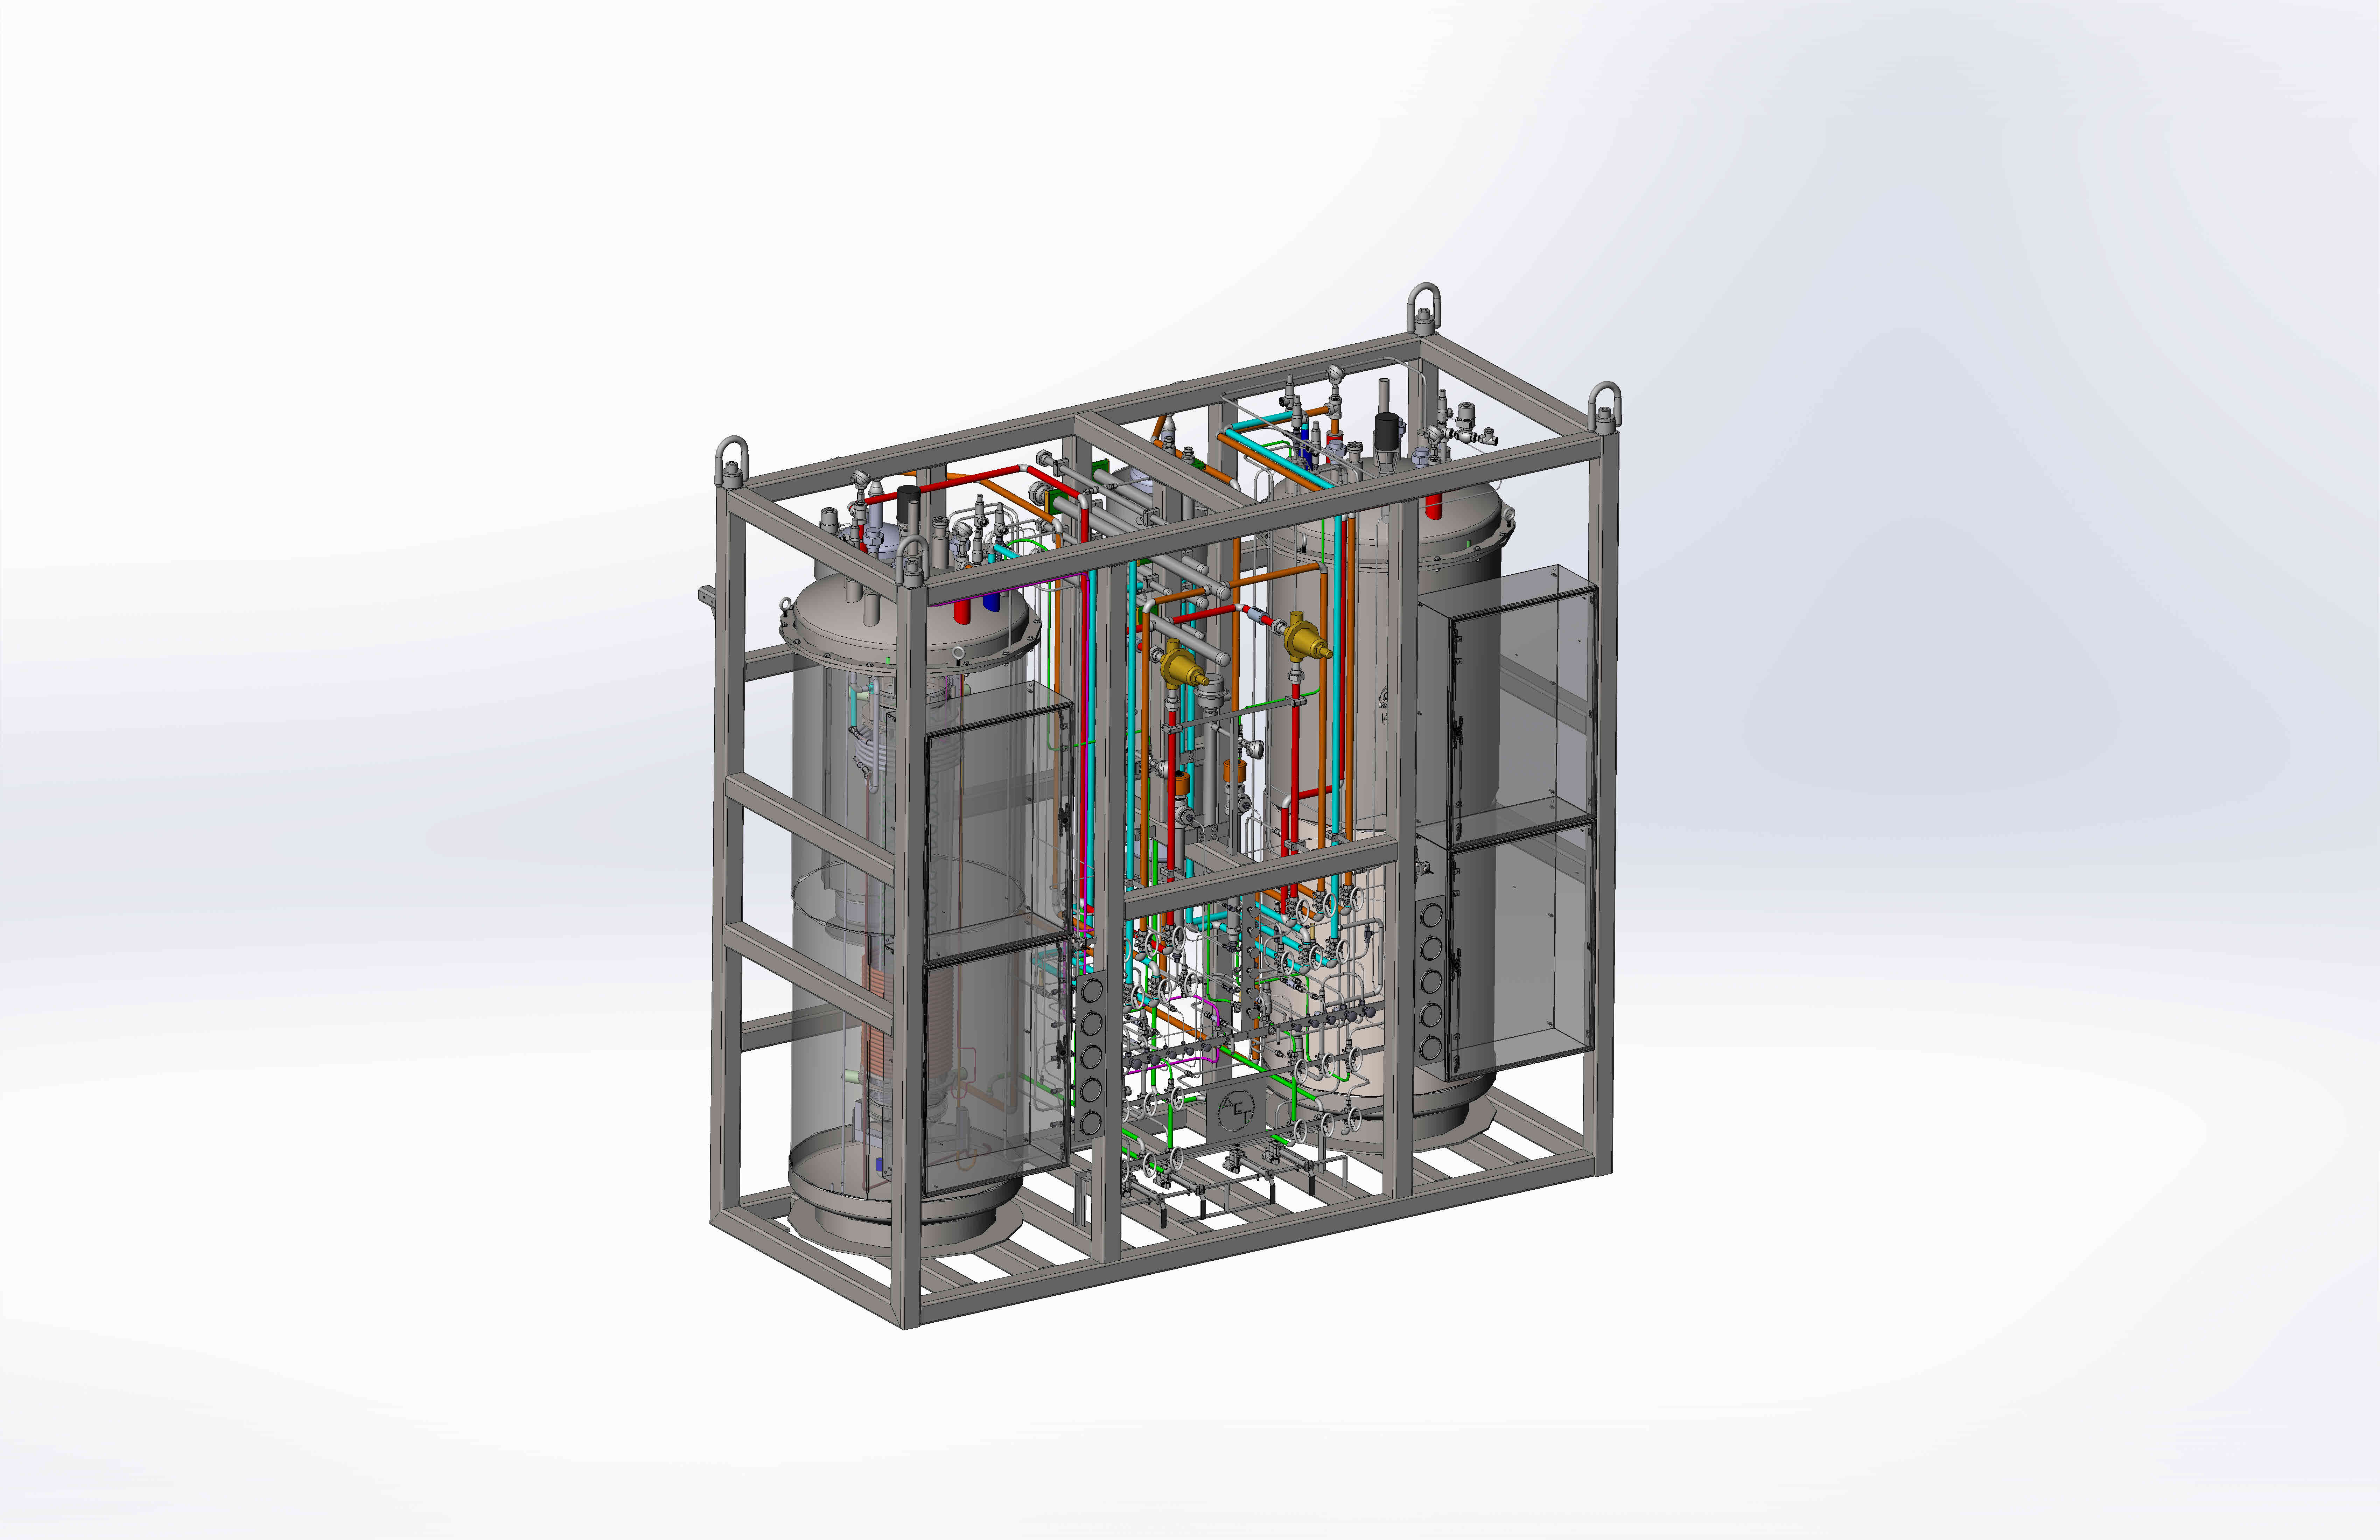 8829_dual-bed_purifier_assembly.jpg